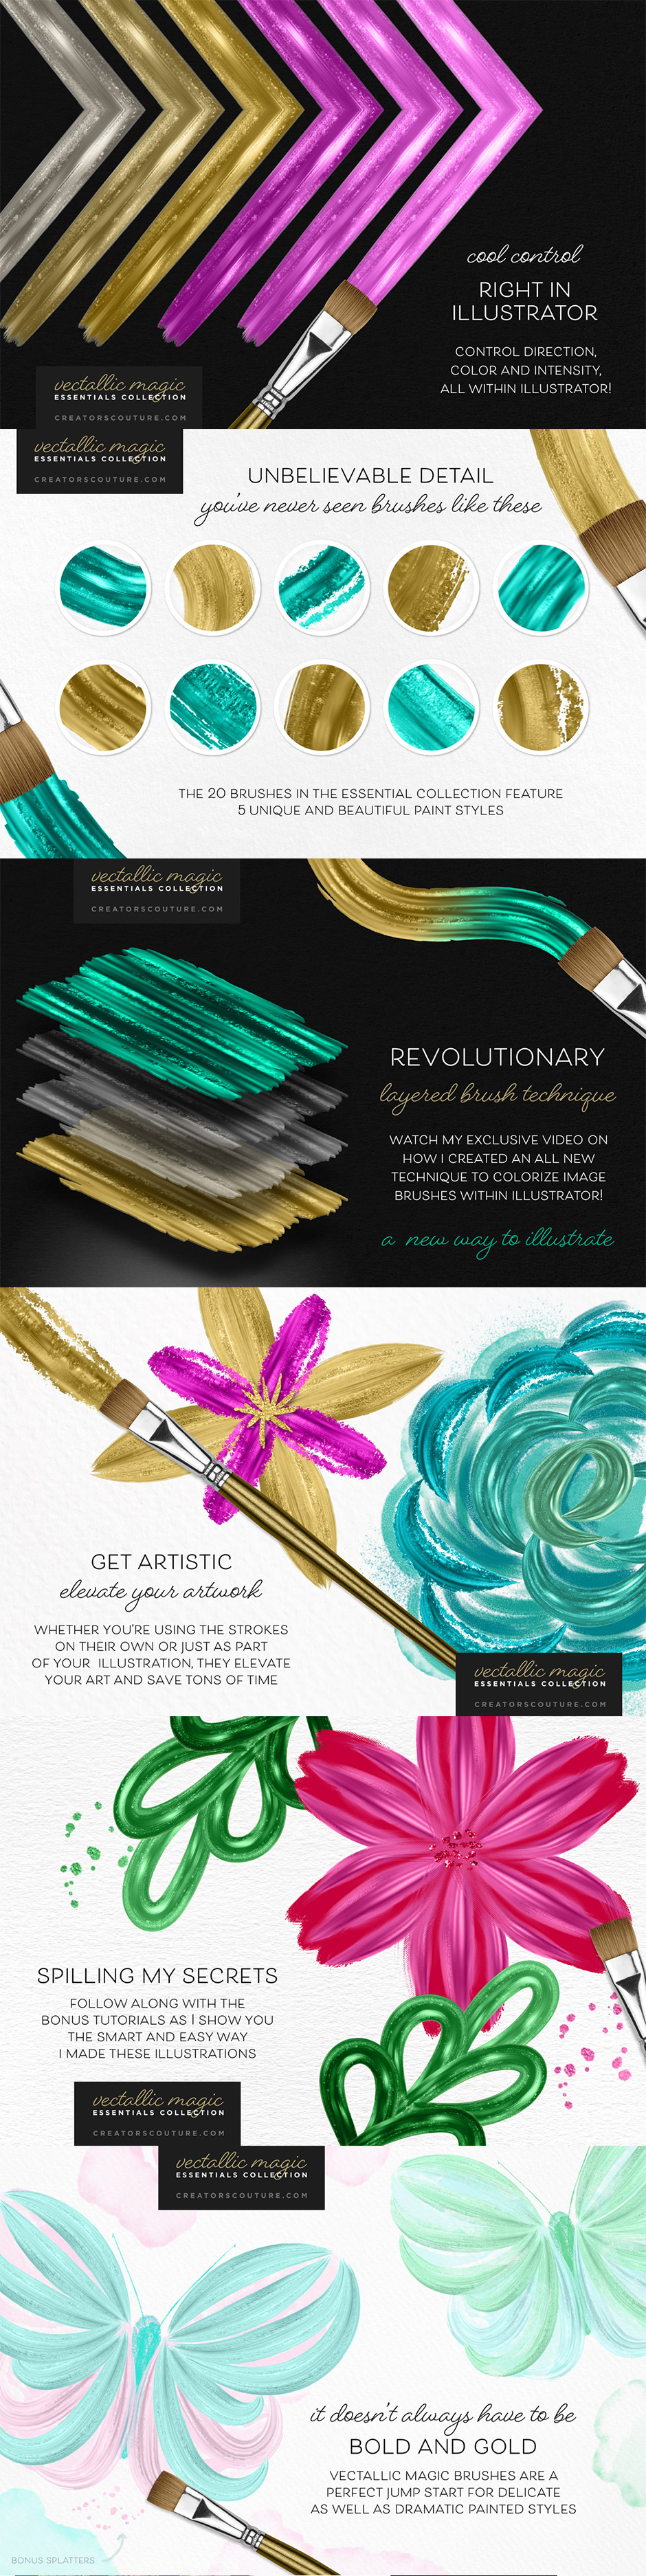 Vectallic Magic Brush Revolution!